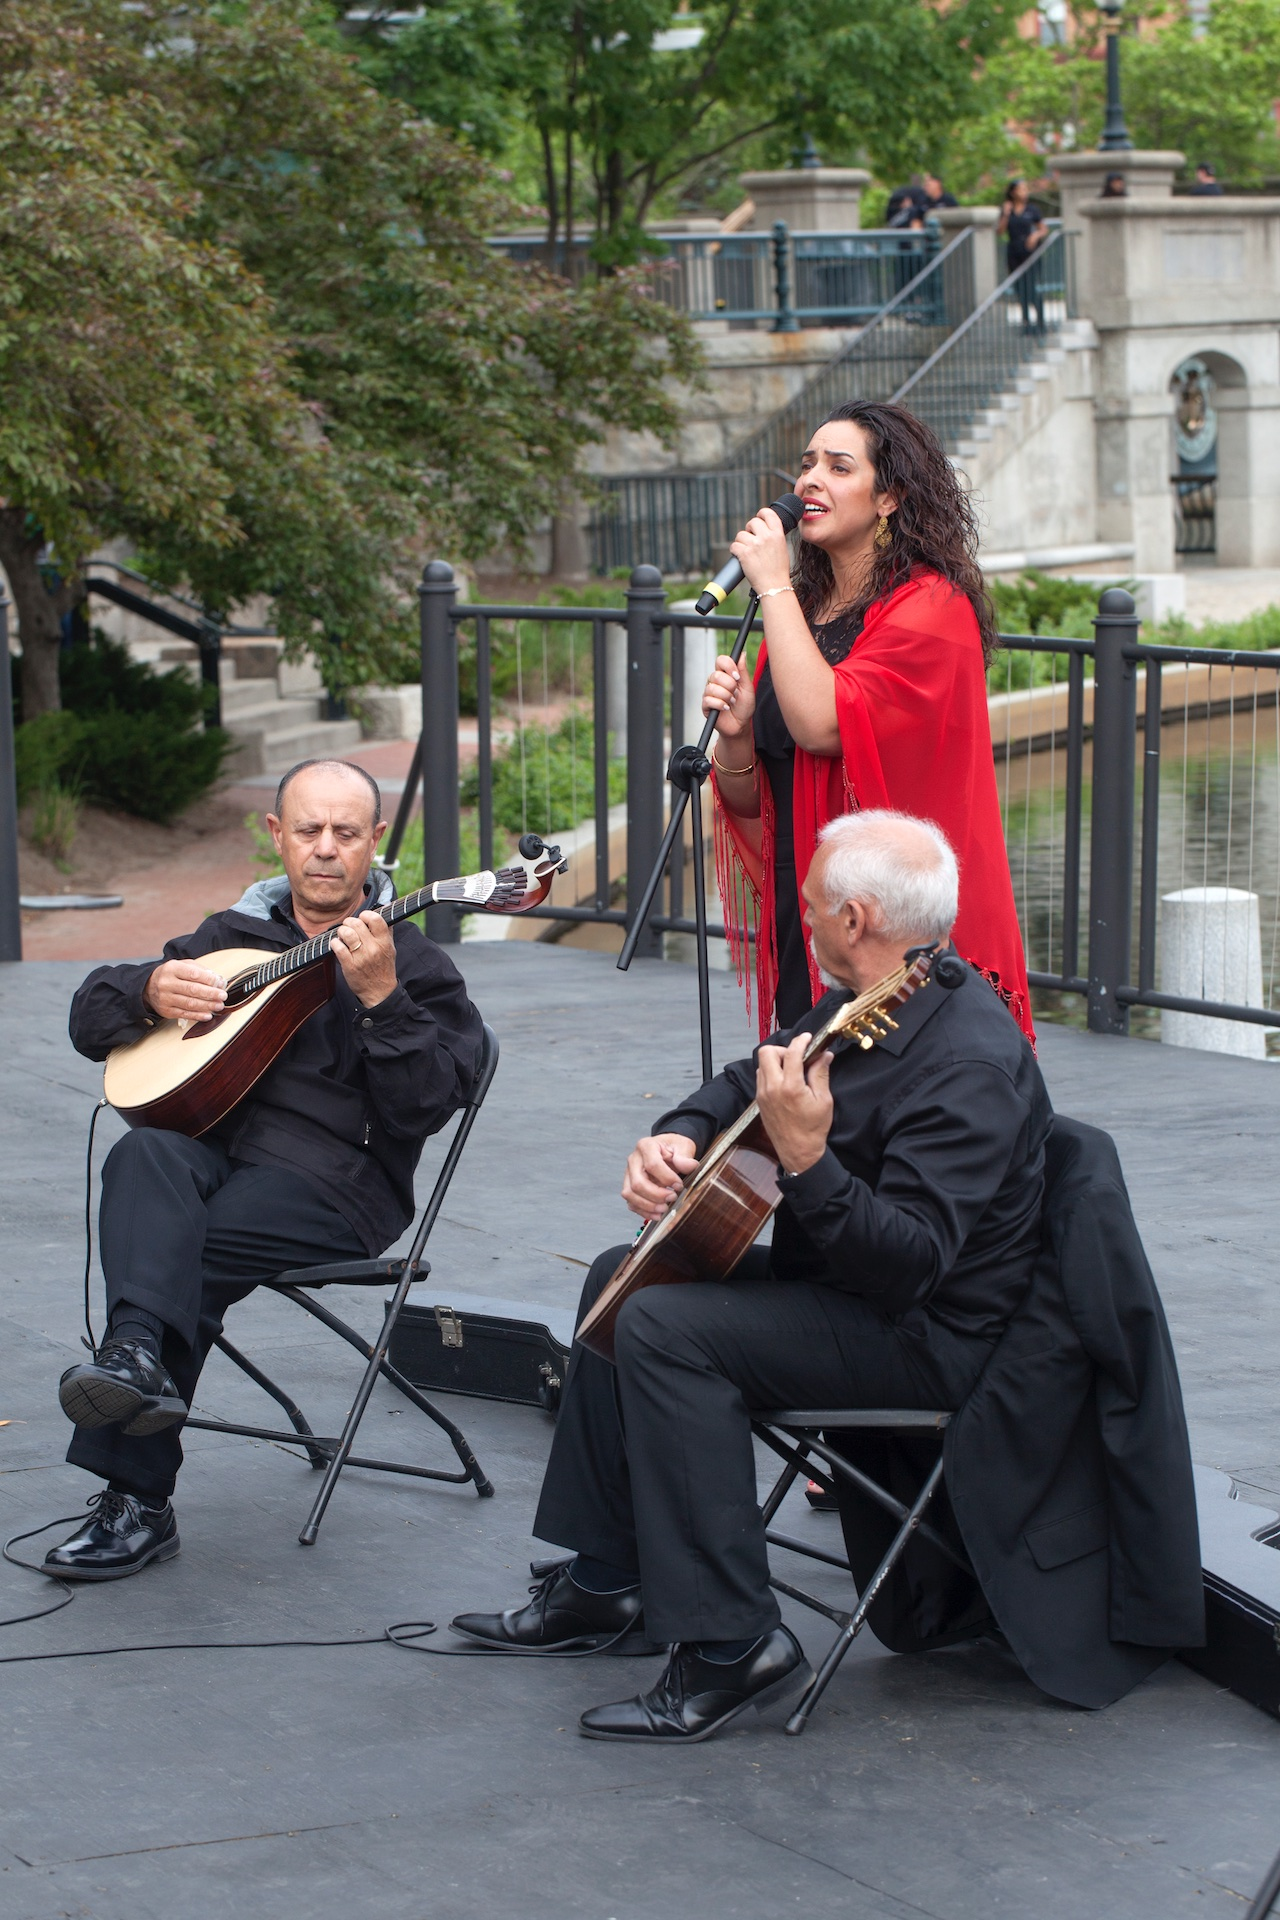 fado-performance-by-tania-dasilva-on-waterplace-park-basin-stage_40984420300_o